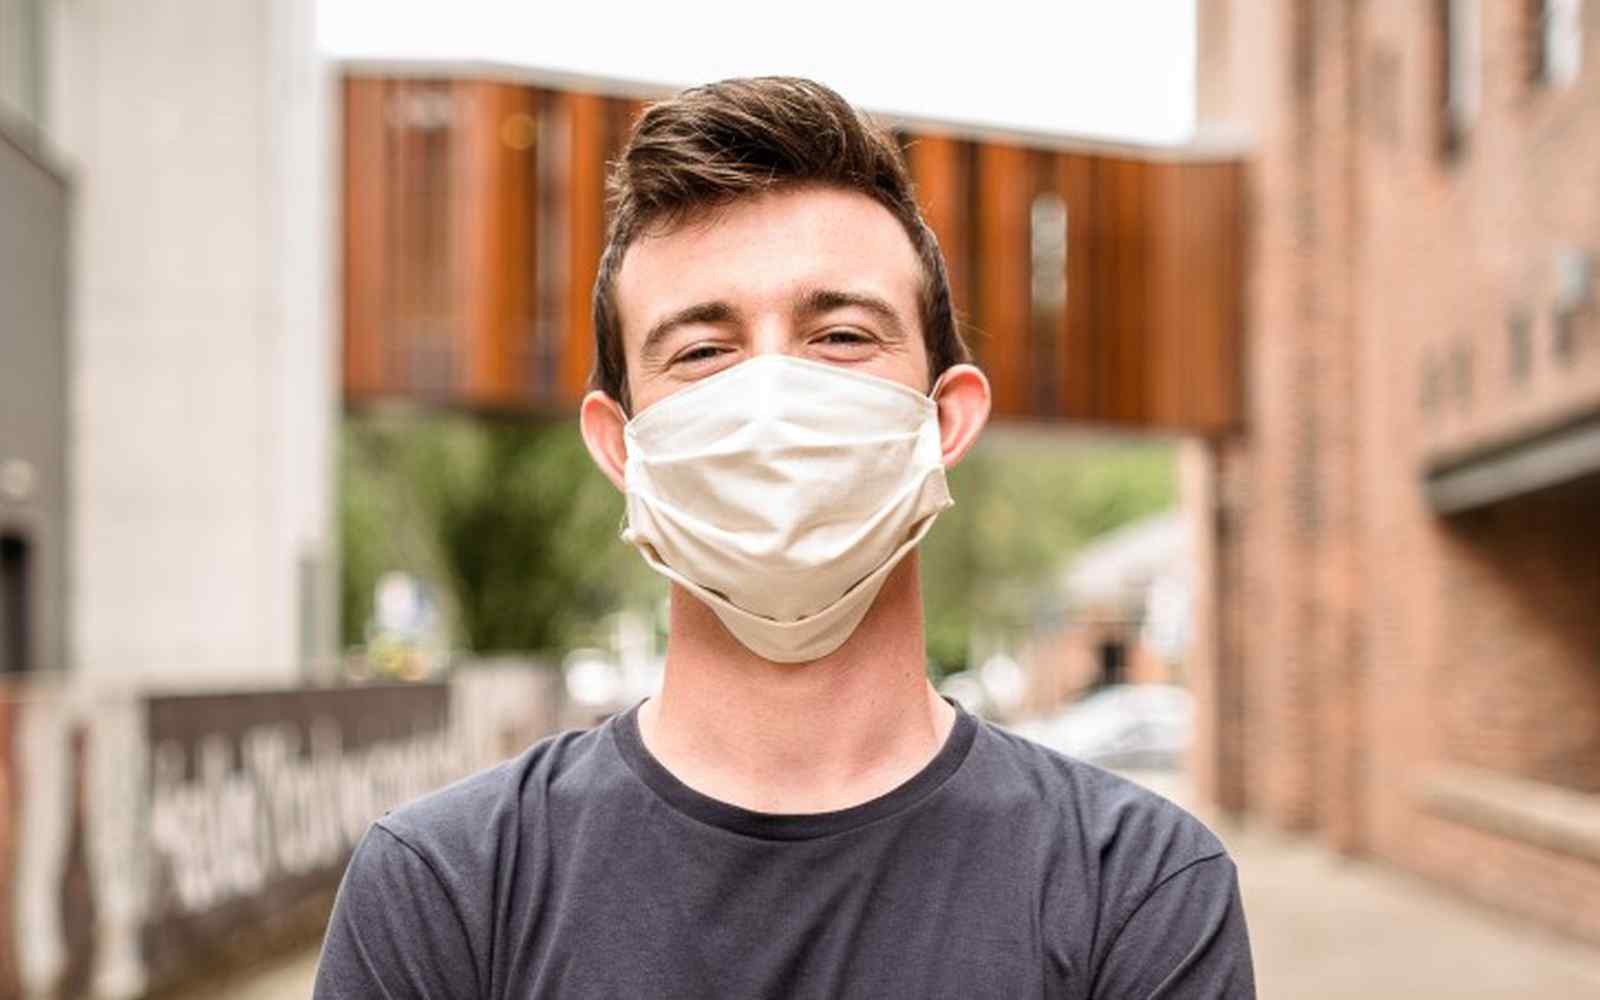 Male student in a white face mask on campus